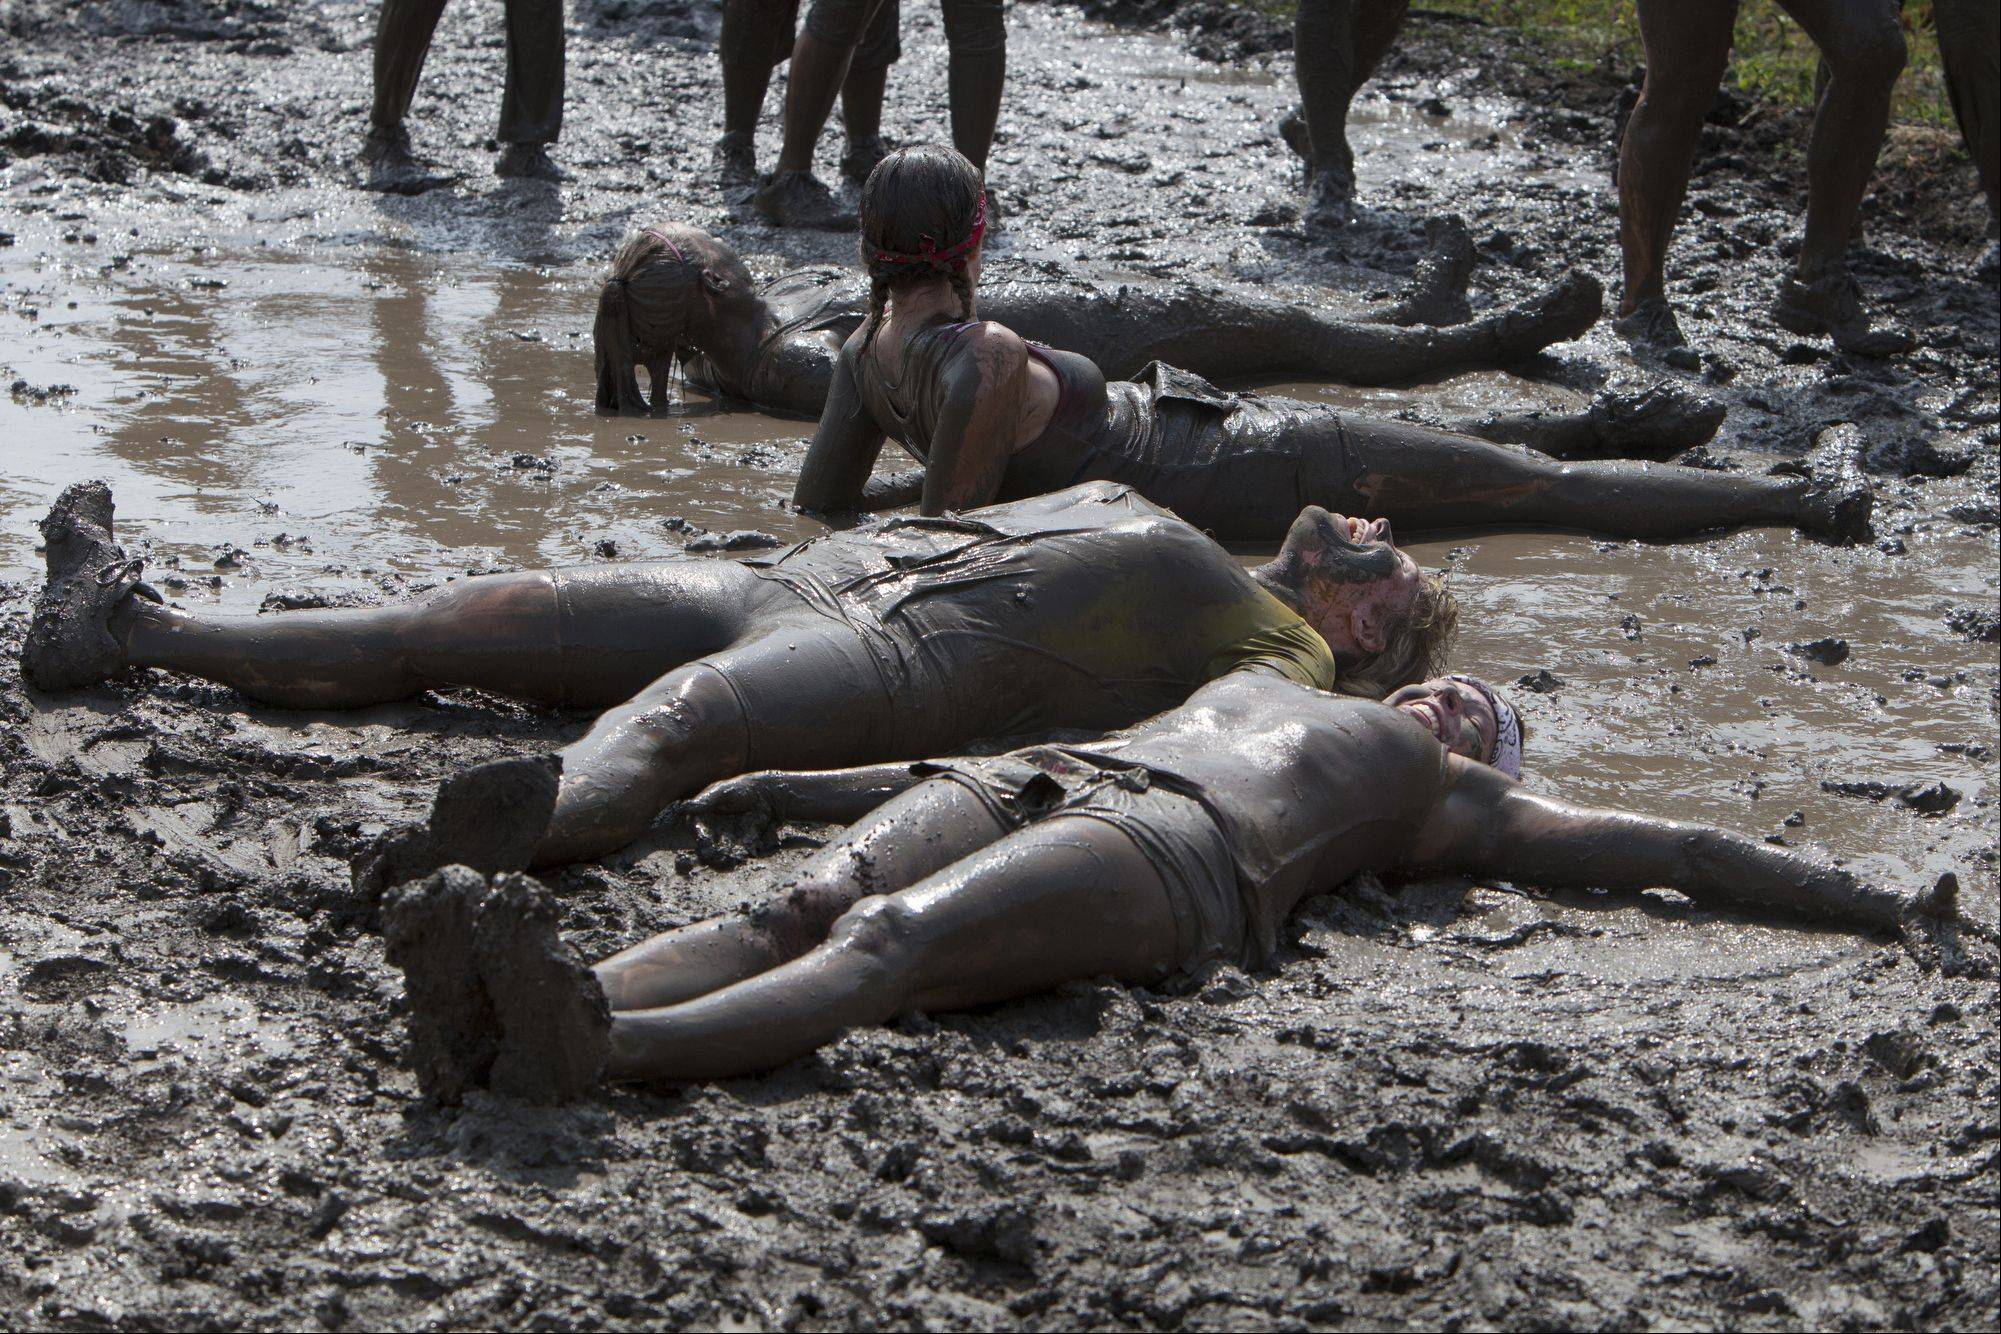 Robin Graham in yellow and Angie Bathel of Chicago make mud angels during the Dirty Girl Mud Run.